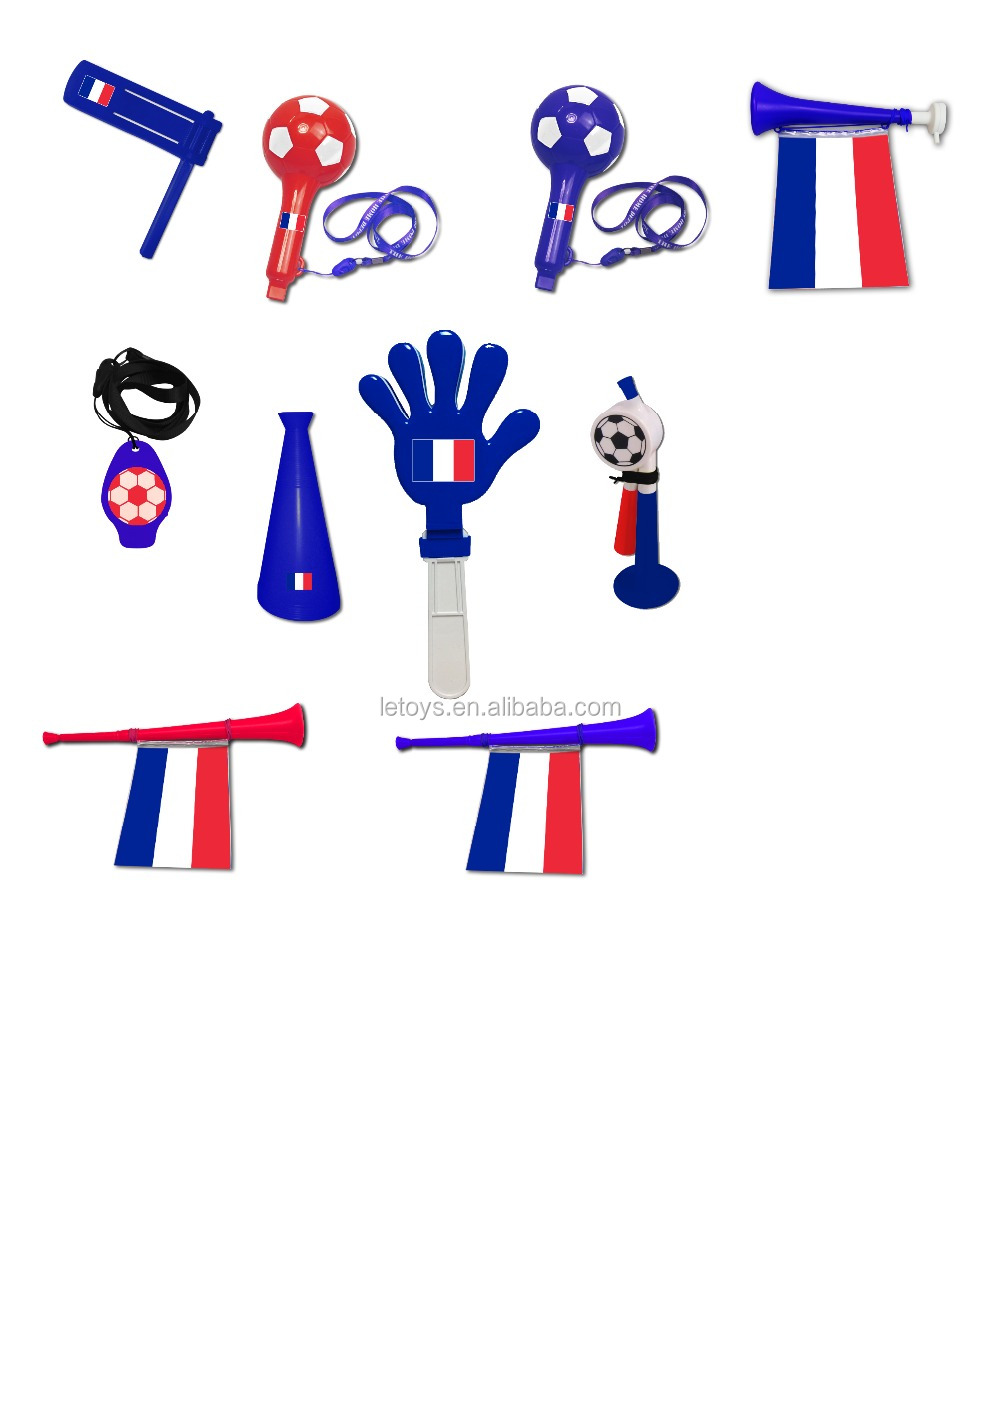 2018 World Cup football vuvuzela France style